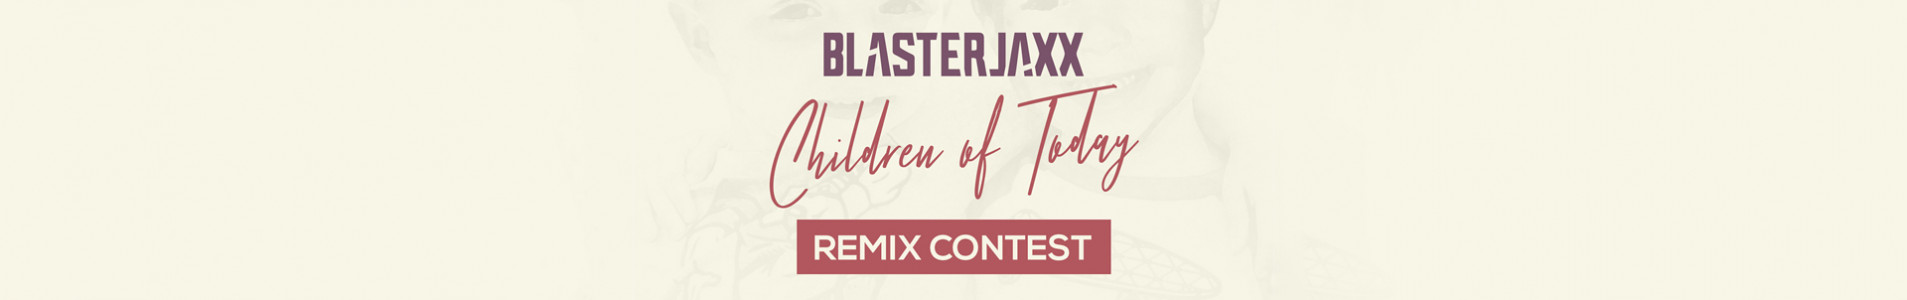 Are you the best producer? Check out these two remix contests!